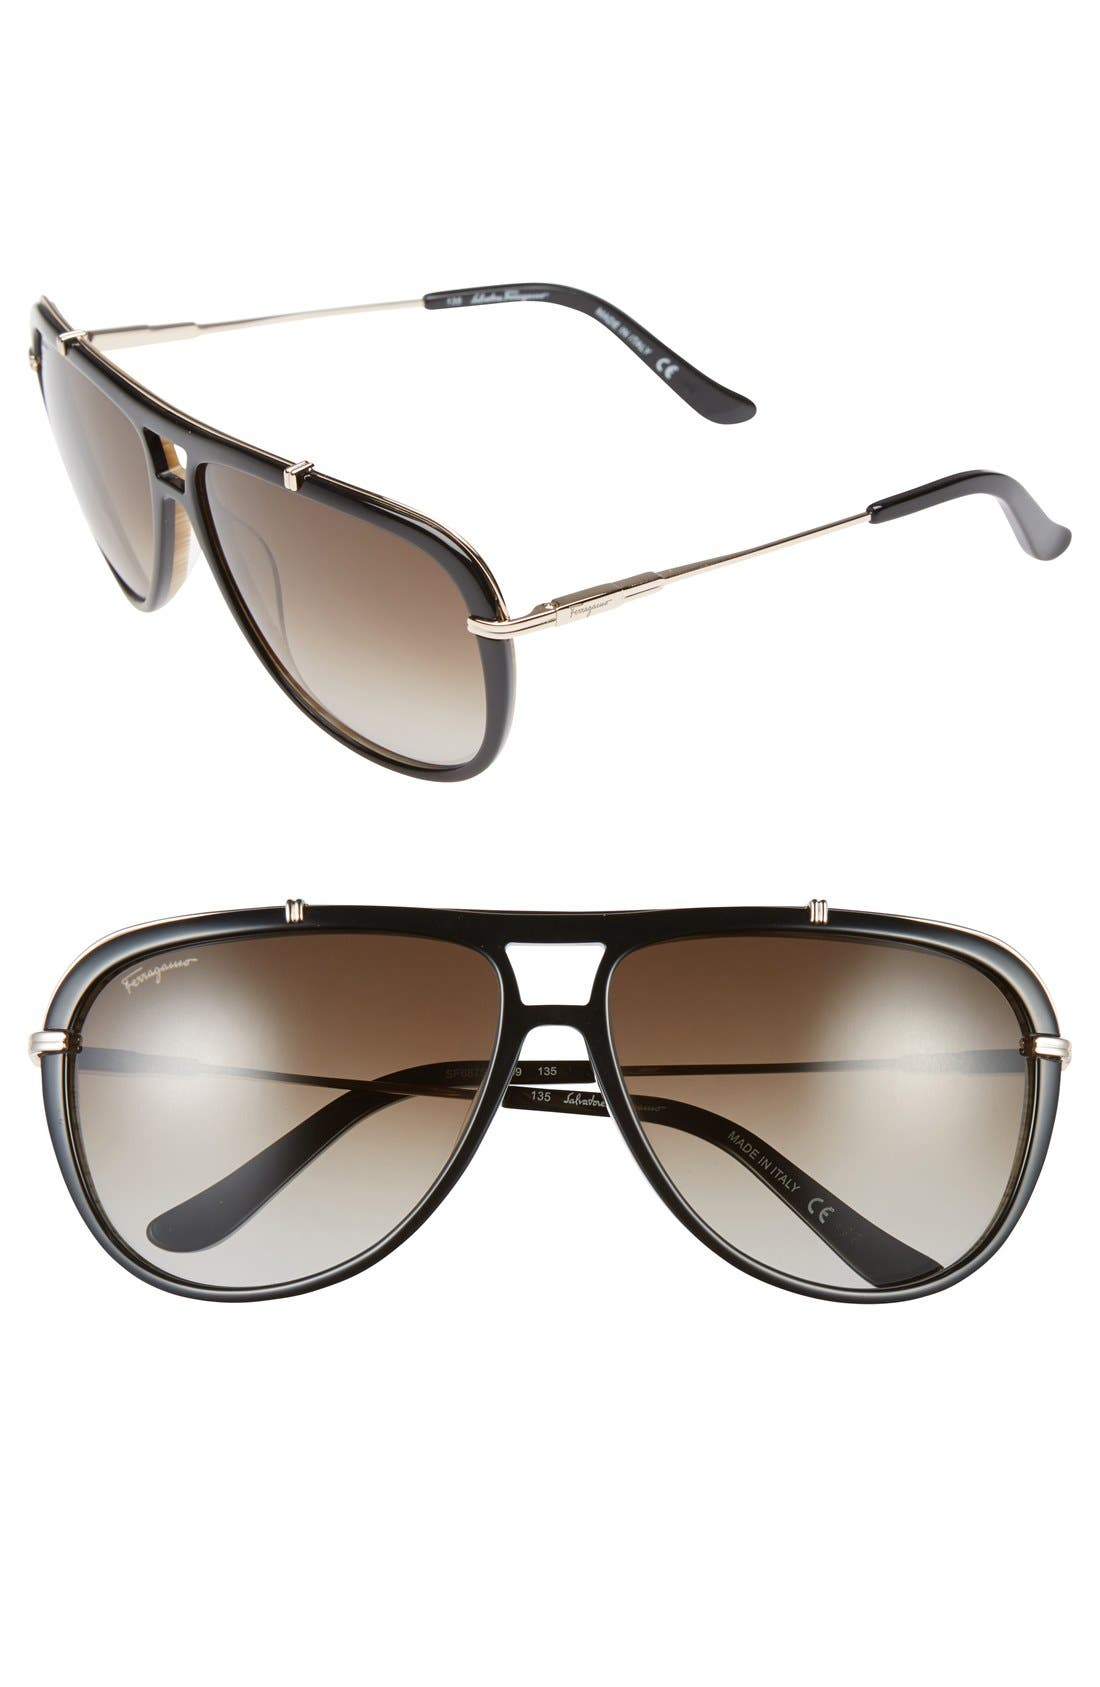 Alternate Image 1 Selected - Salvatore Ferragamo 60mm Sunglasses